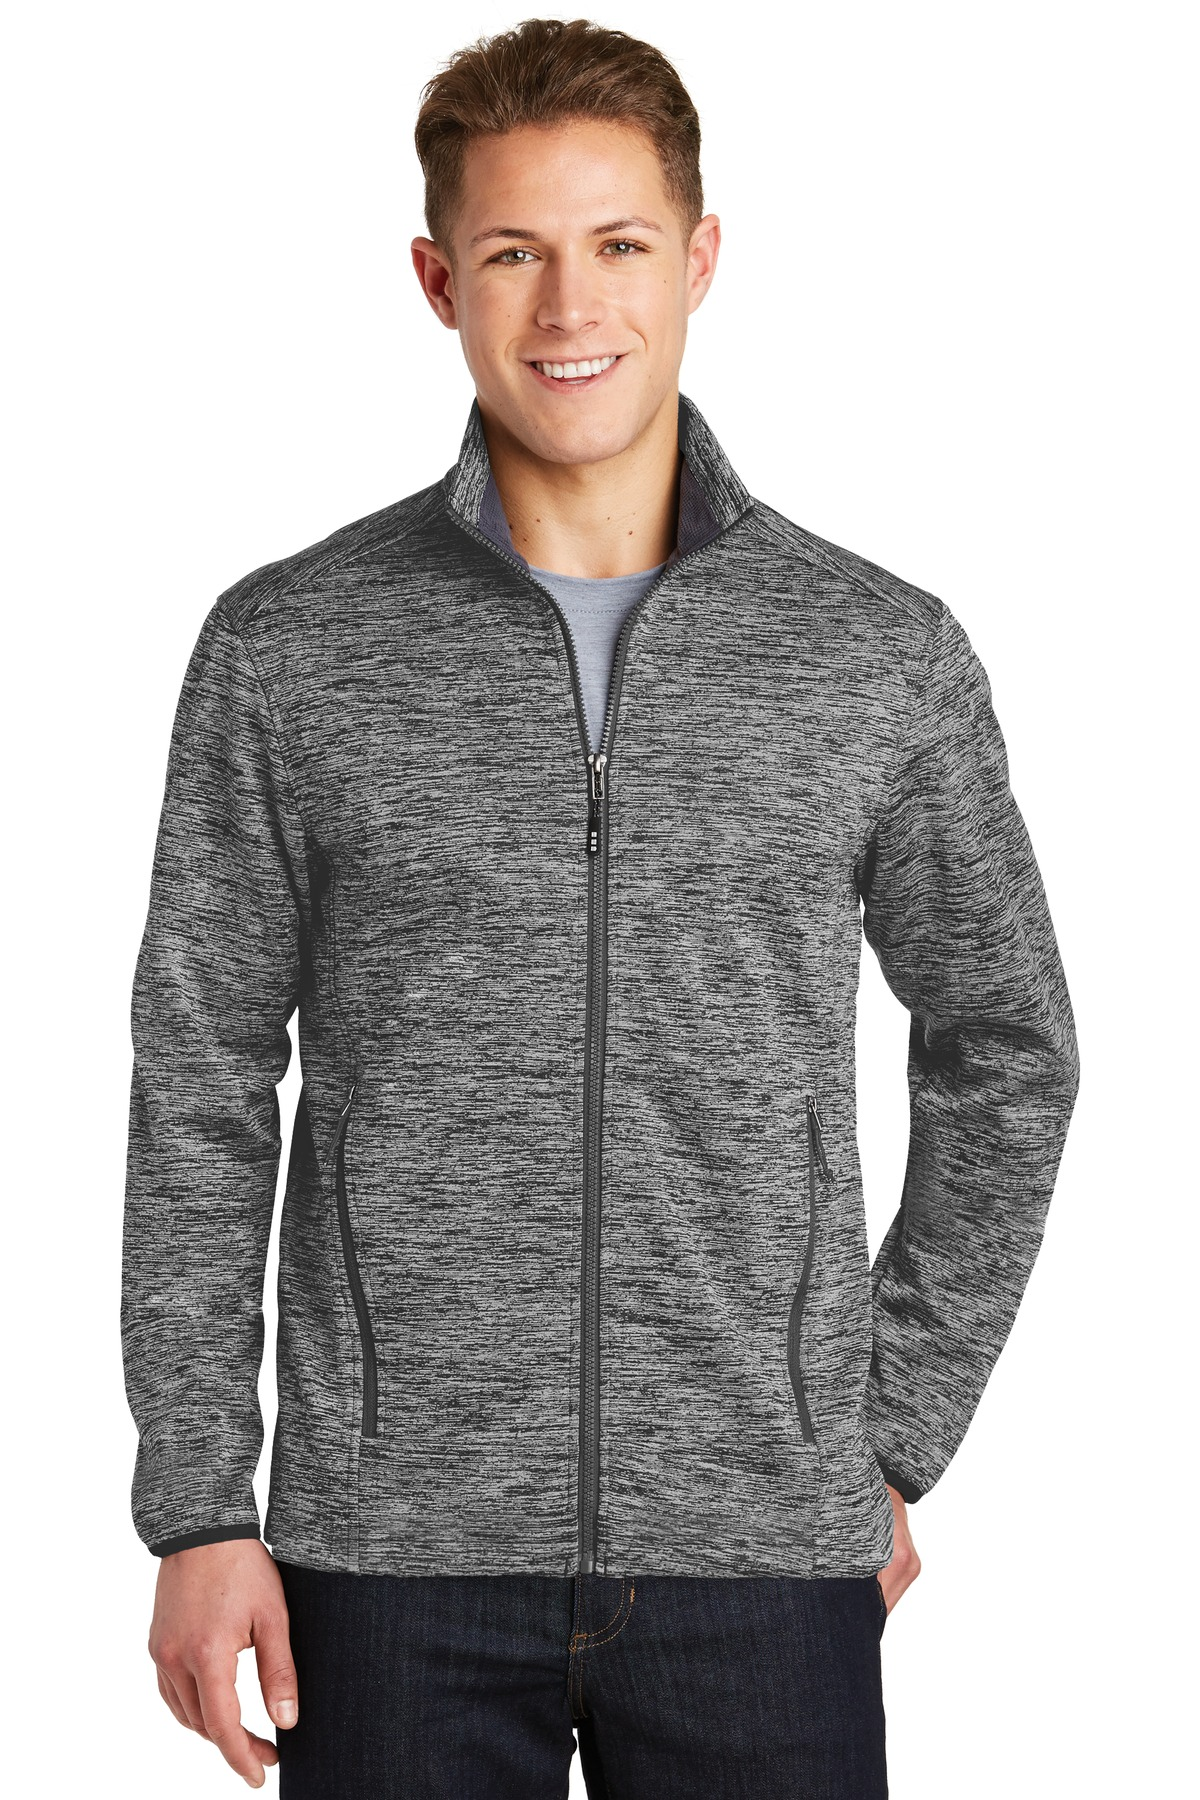 Sport-Tek ®  PosiCharge ®  Electric Heather Soft Shell Jacket. JST30 - Black Electric